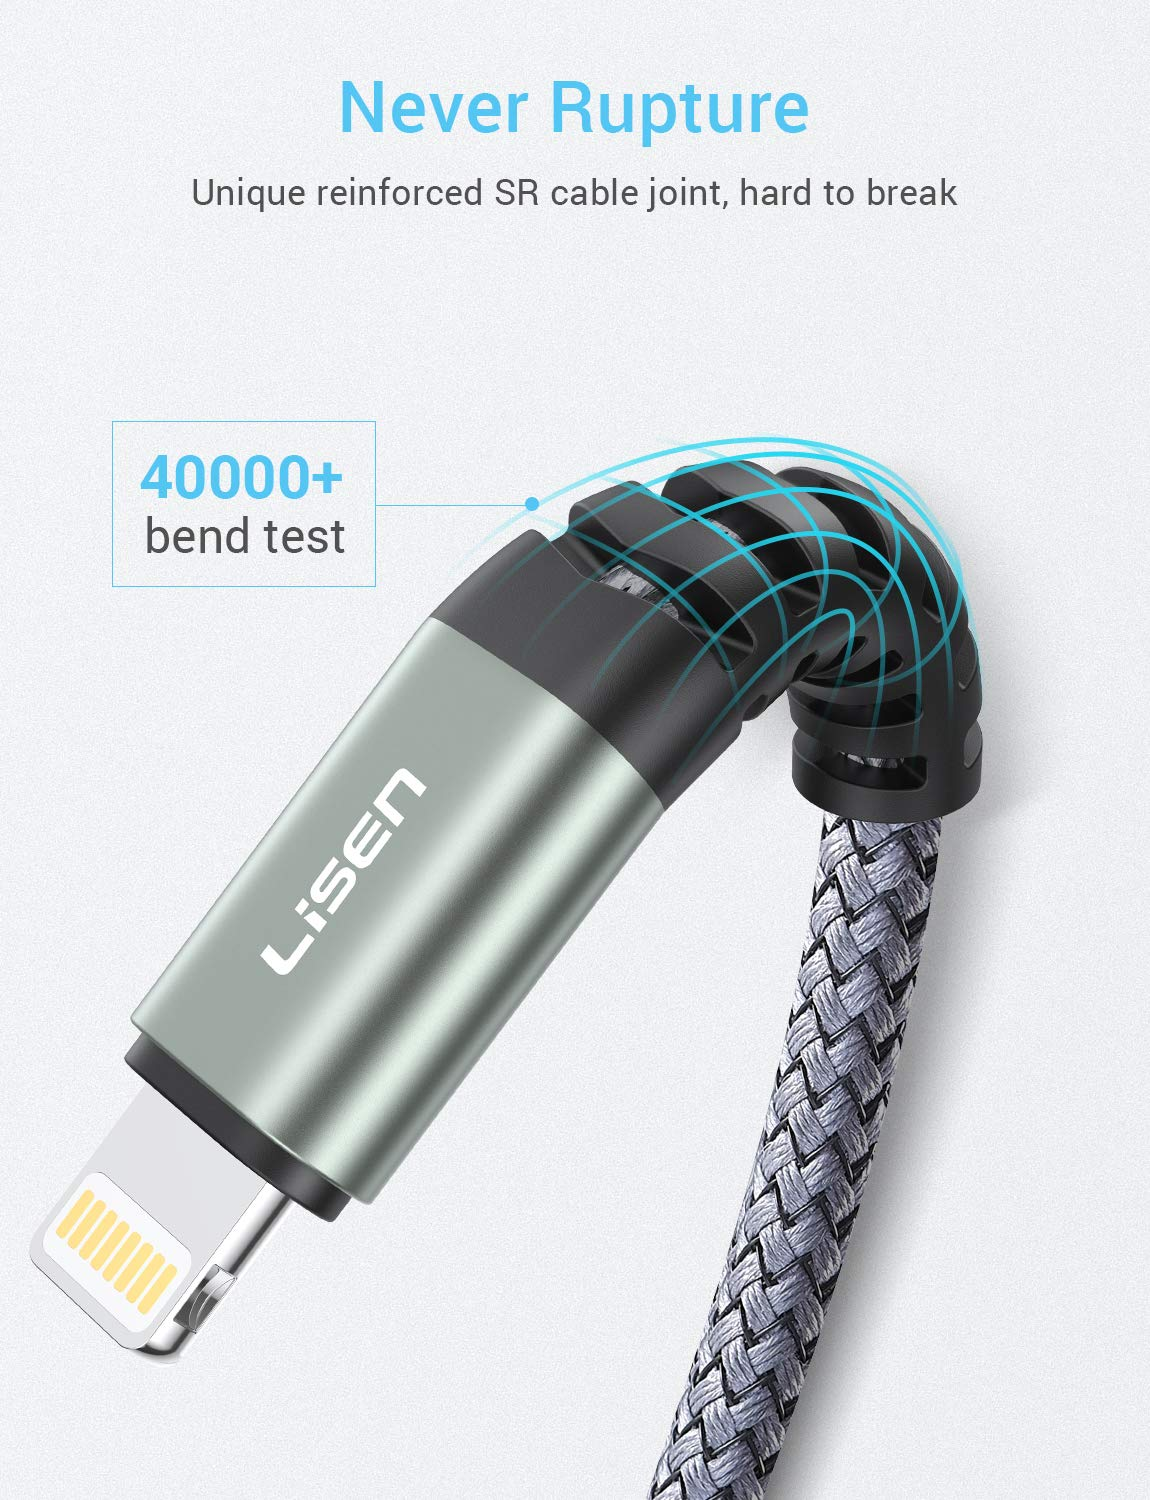 LISEN Lightning to USB-A Cable 6ft, Apple MFi Certified for iPhone Charger, Nylon Braided USB Fast Charging Cord Compatible with iPhone X/Xs Max/XR / ...